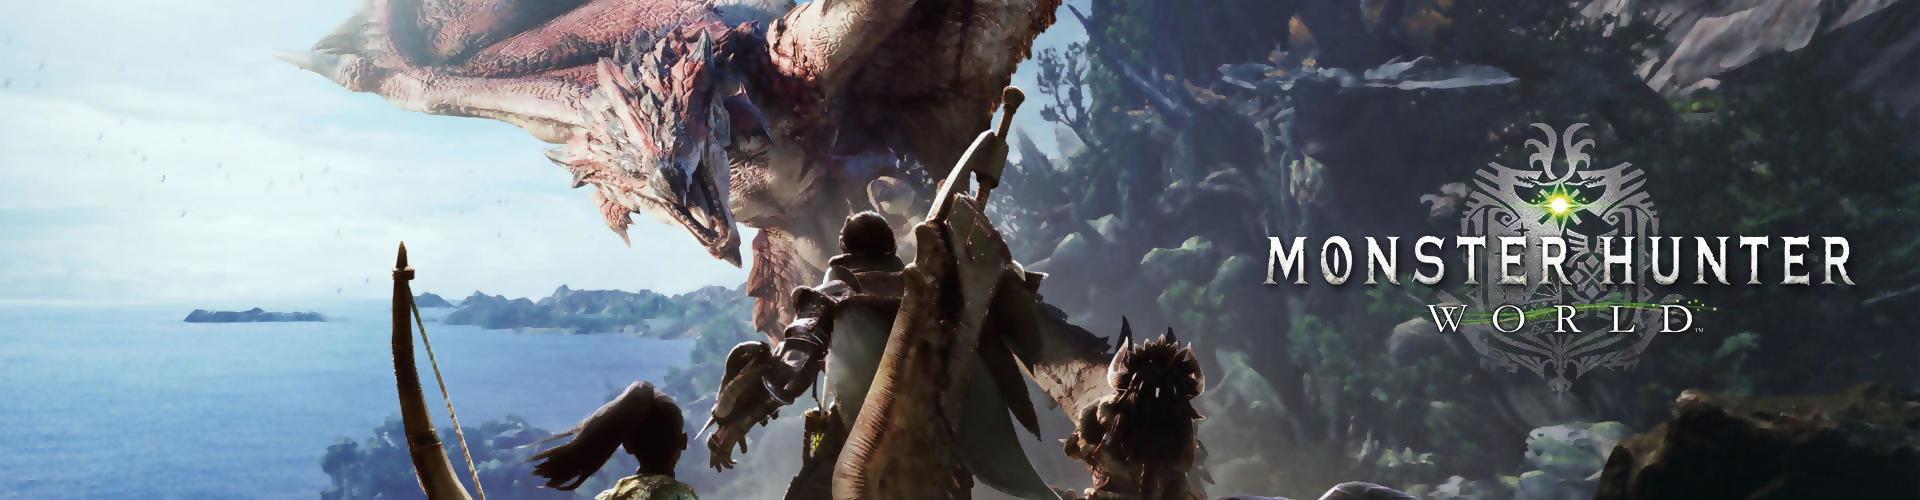 All the Monter Hunter: World reviews are here